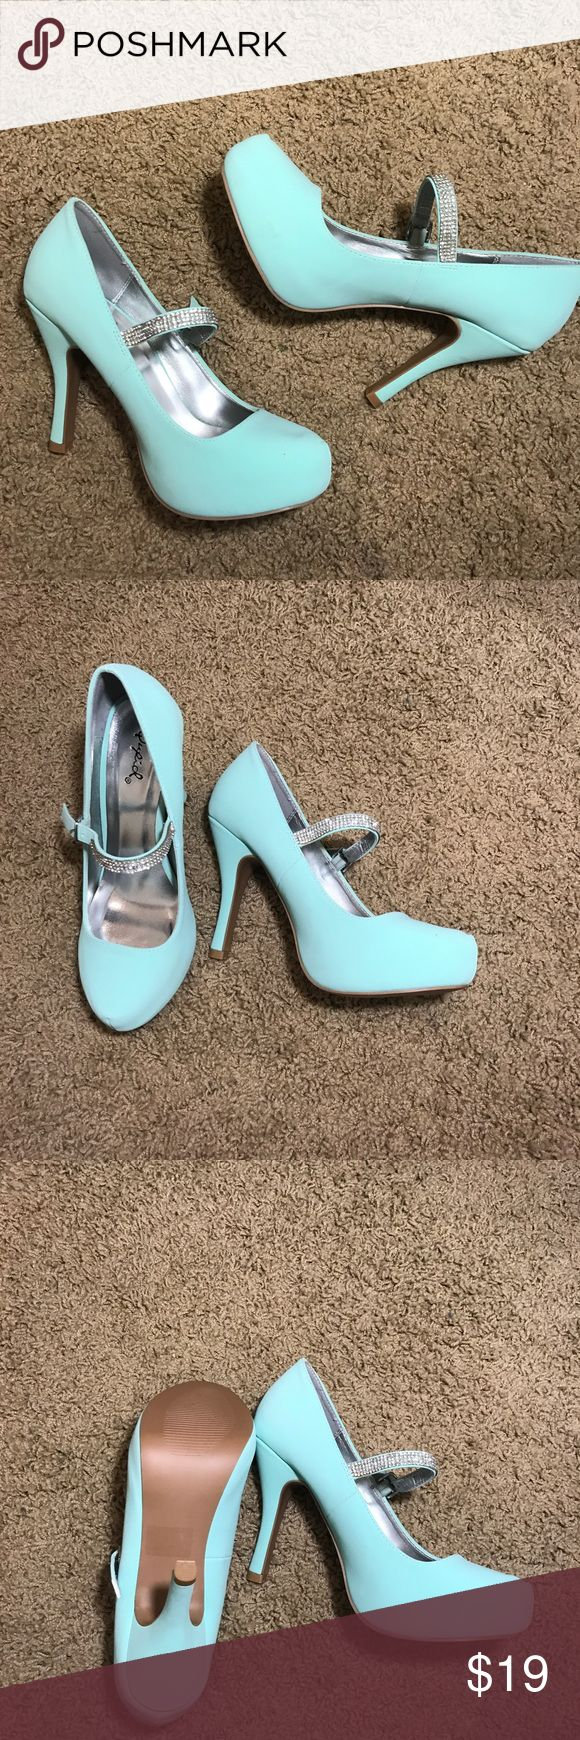 Tiffany blue heels Absolutely stunning Tiffany blue heels. Excellent condition, never been worn. Has no missing rhinestones and is a size 8. I noticed a small spot on the shoes (shown in picture). Very gorgeous pumps. Qupid Shoes Heels